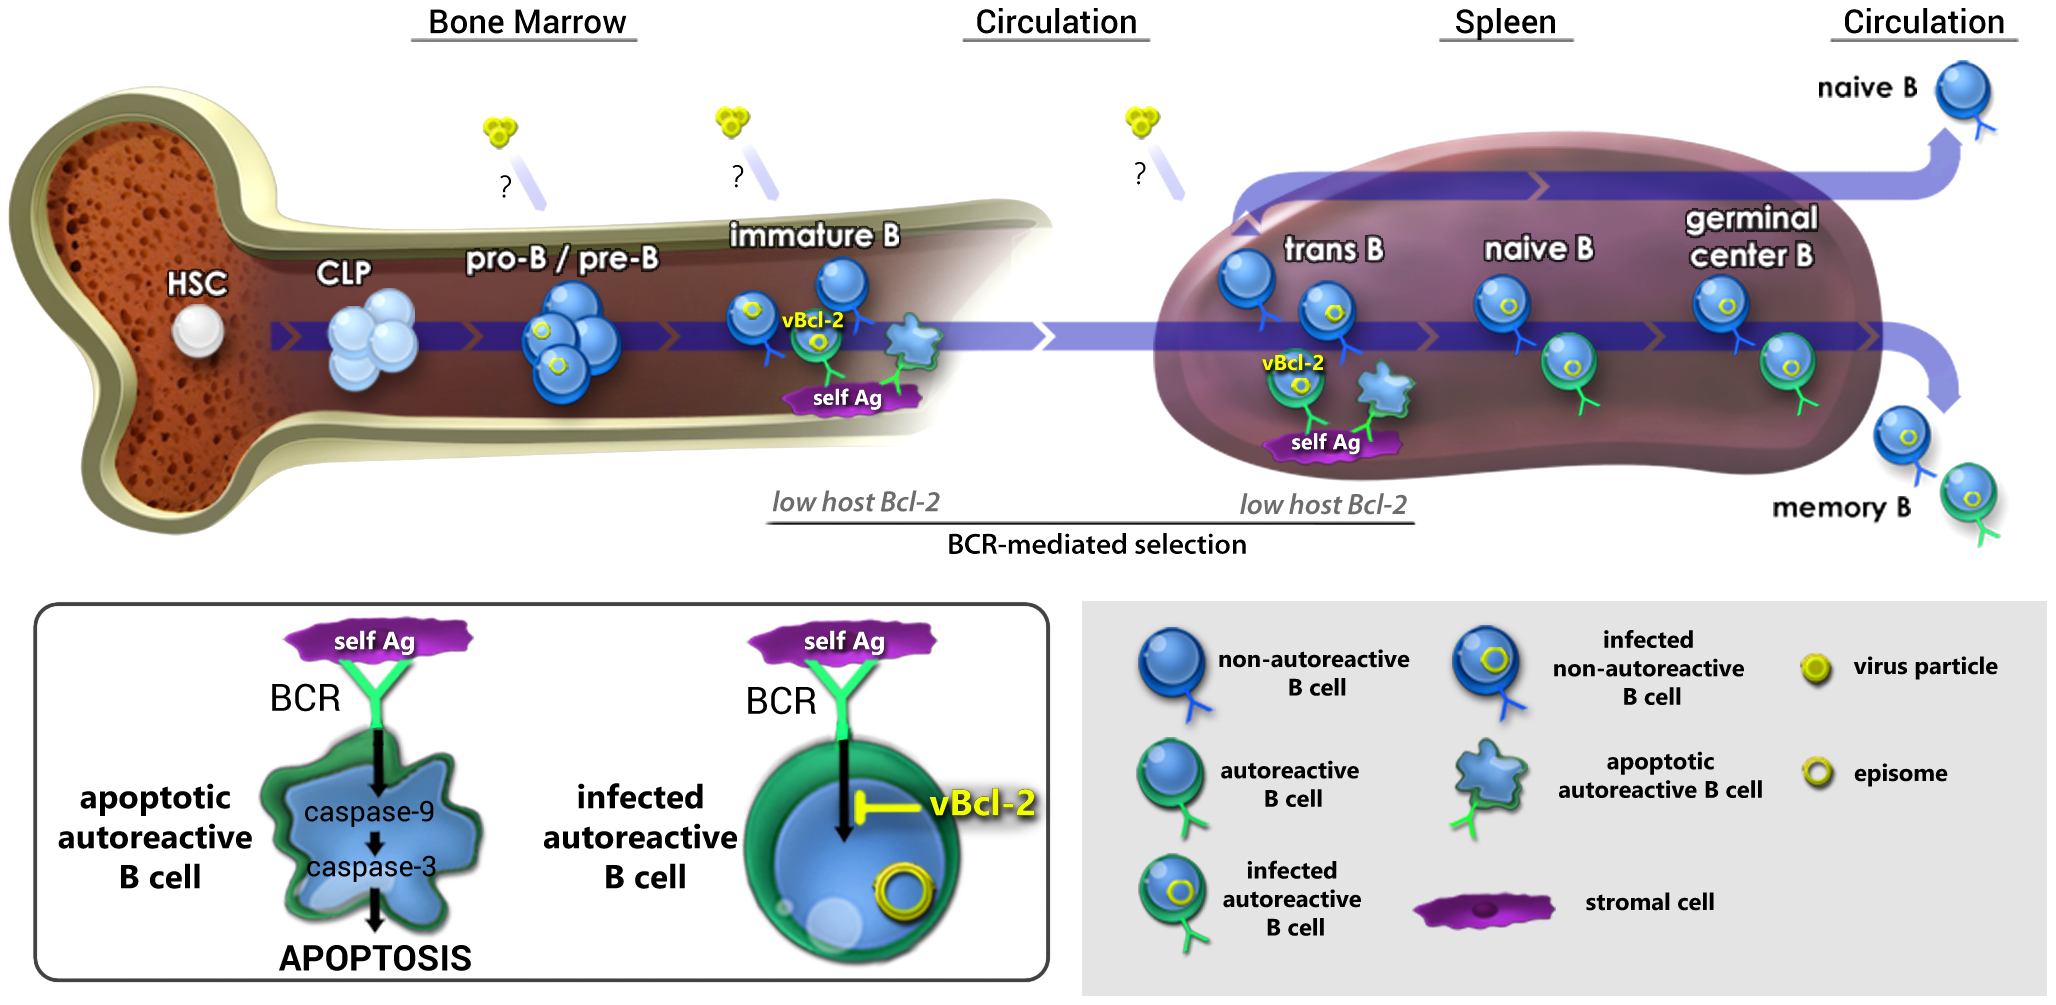 Working model: vBcl-2 promotes the survival of developing B cells and the maintenance of latency in the mature B cell reservoir.